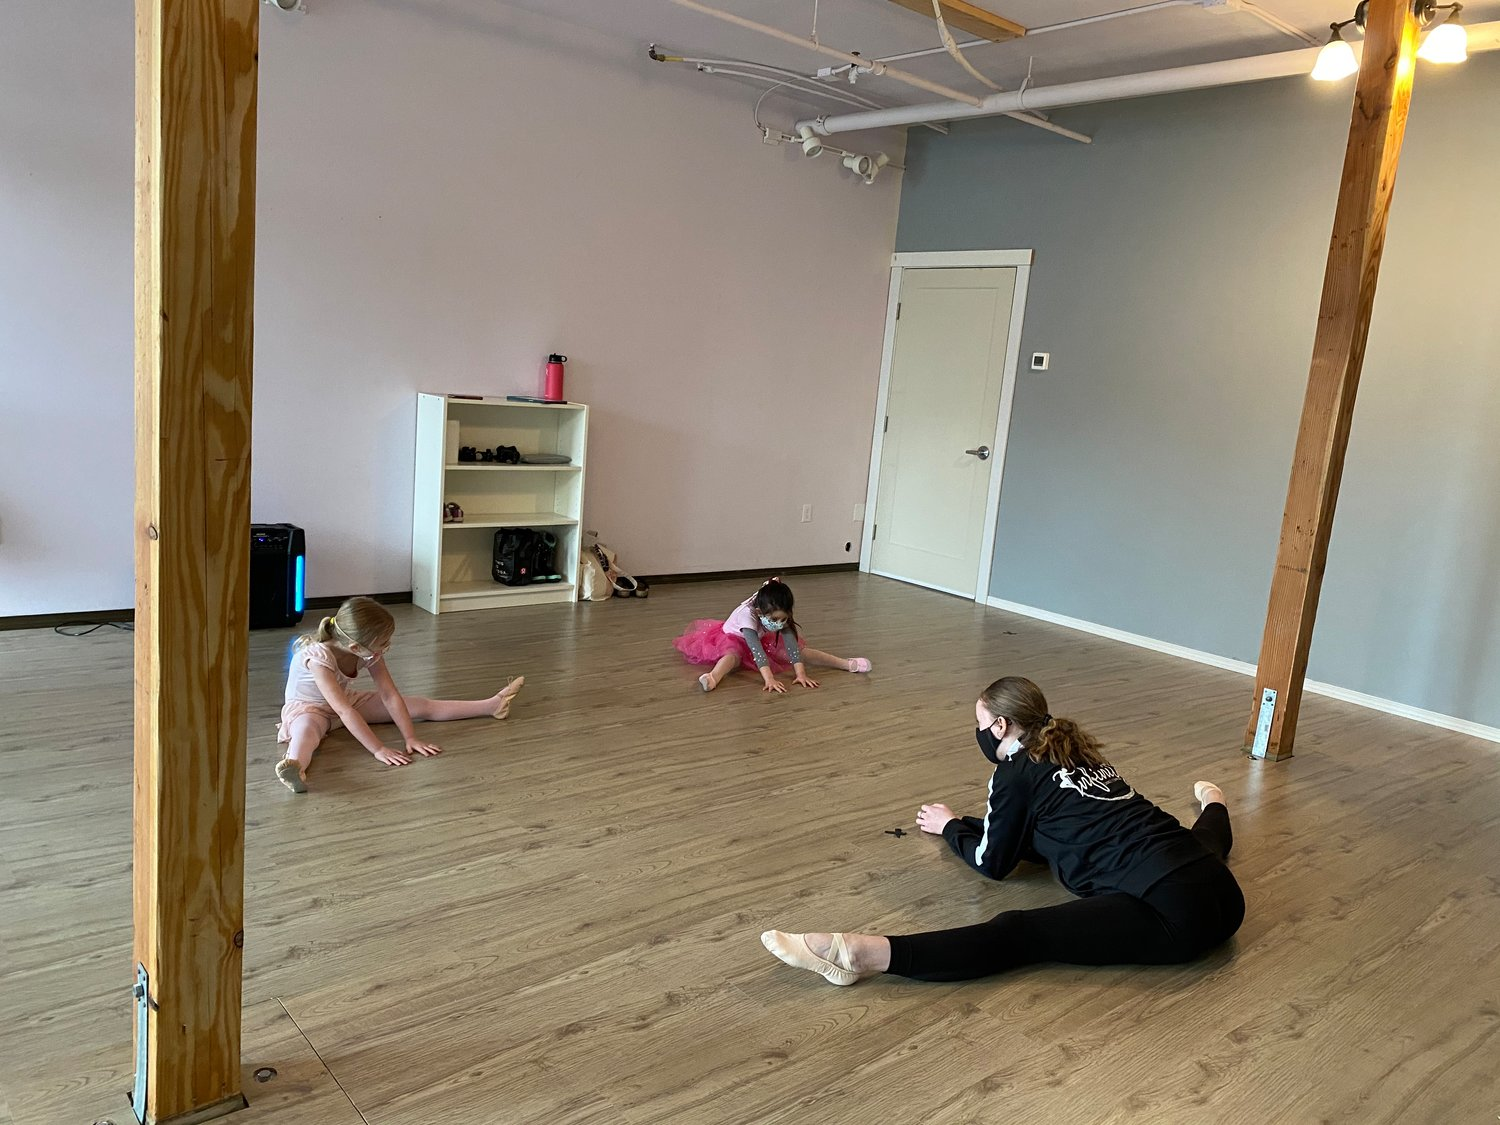 Dancers warm up during their pre-ballet class at Infinity Dance Studio in Birch Bay.